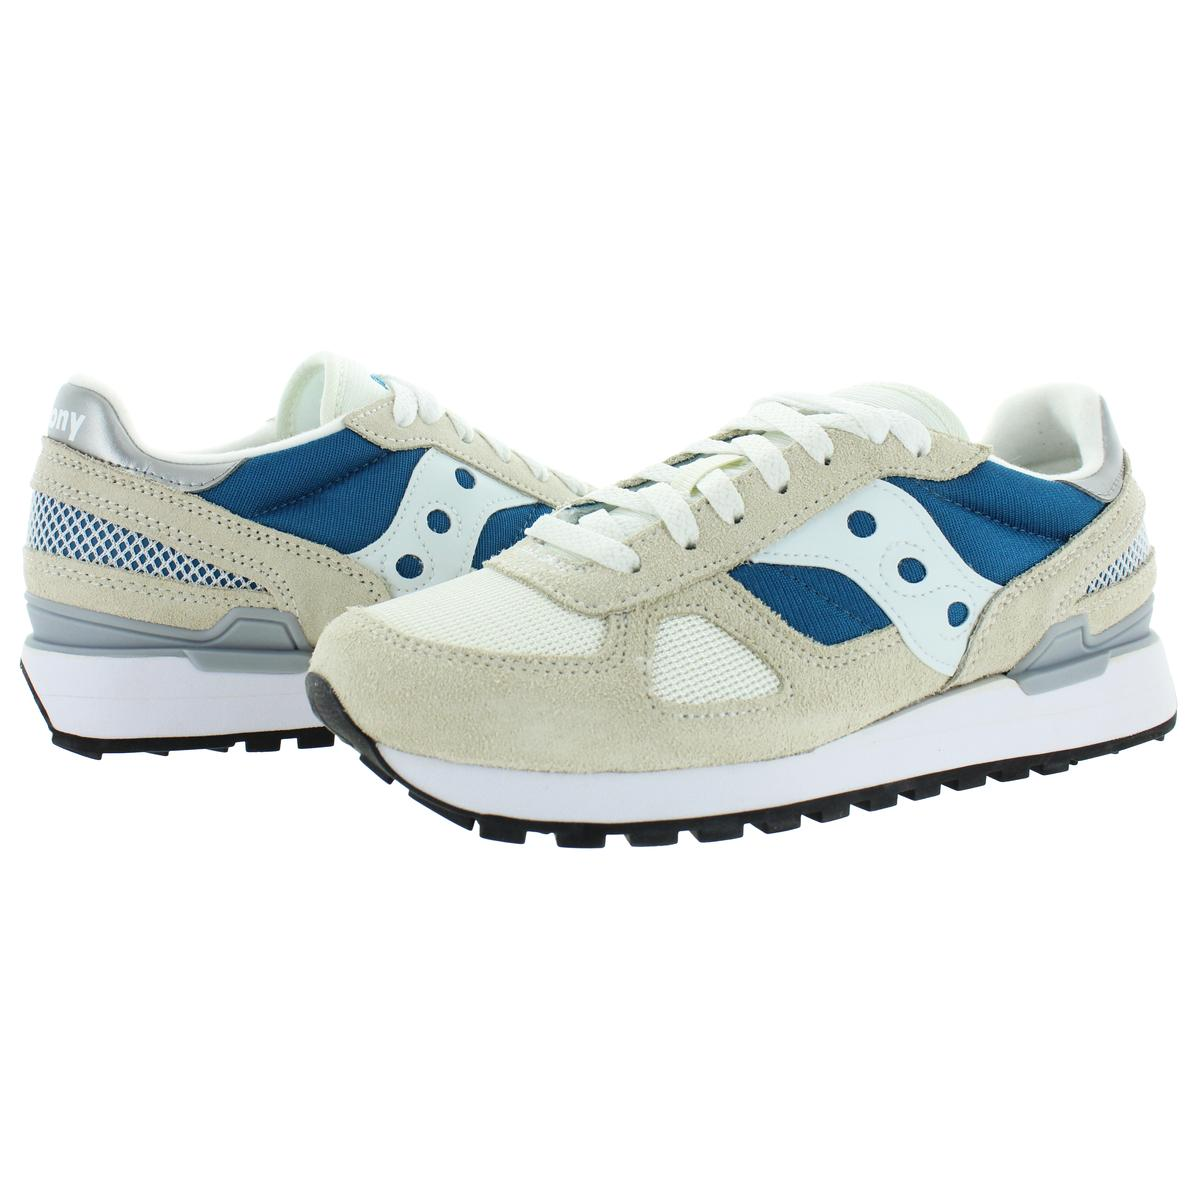 Saucony-Mens-Shadow-Original-Trainers-Suede-Comfort-Sneakers-Shoes-BHFO-0431 miniatuur 10